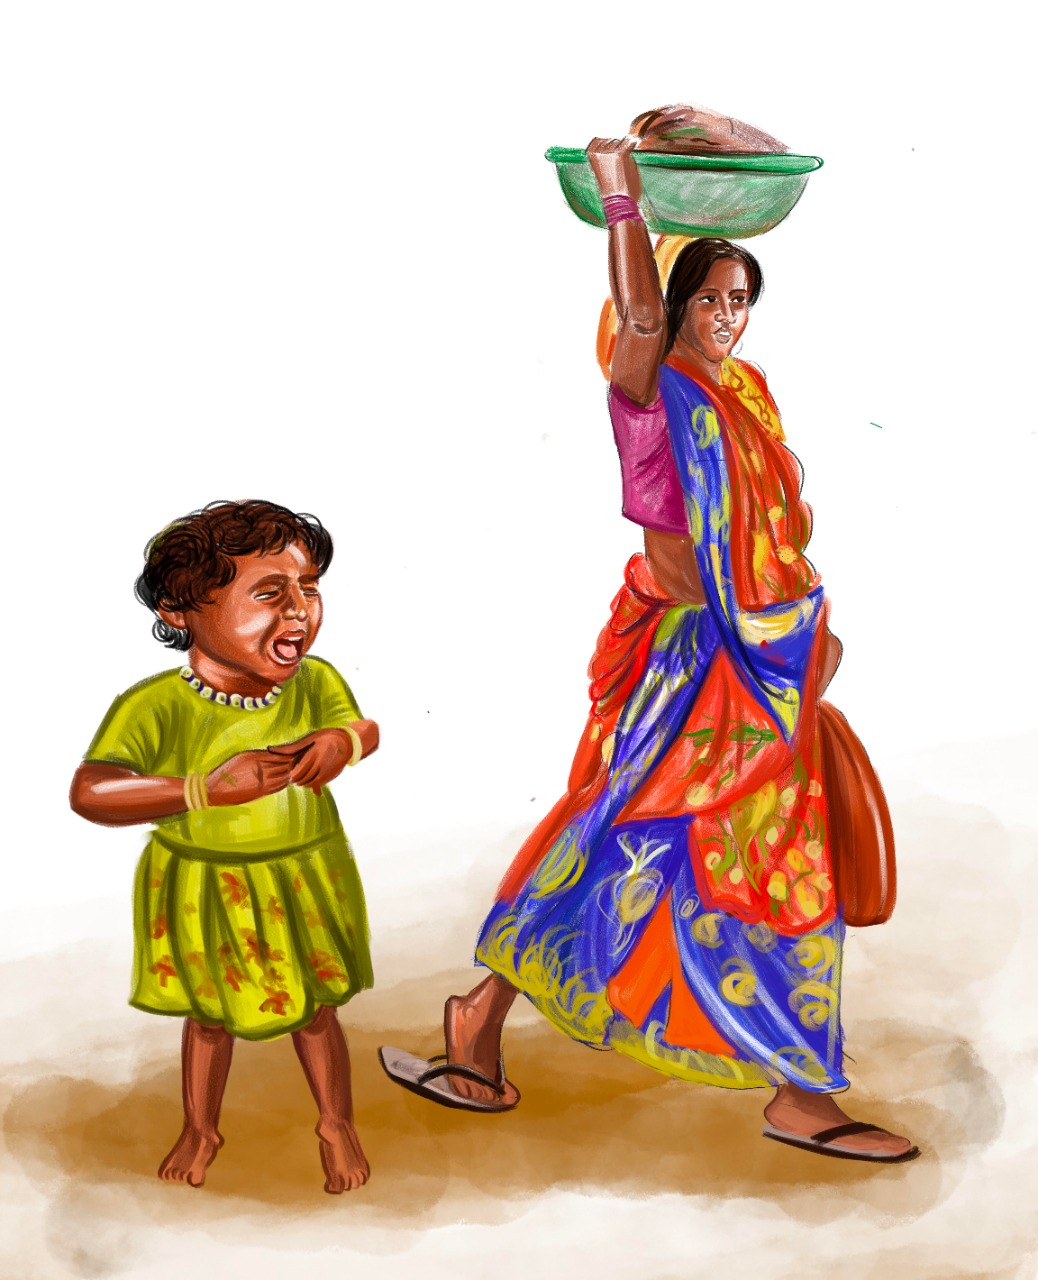 Superwomen -A Mother's love for her child